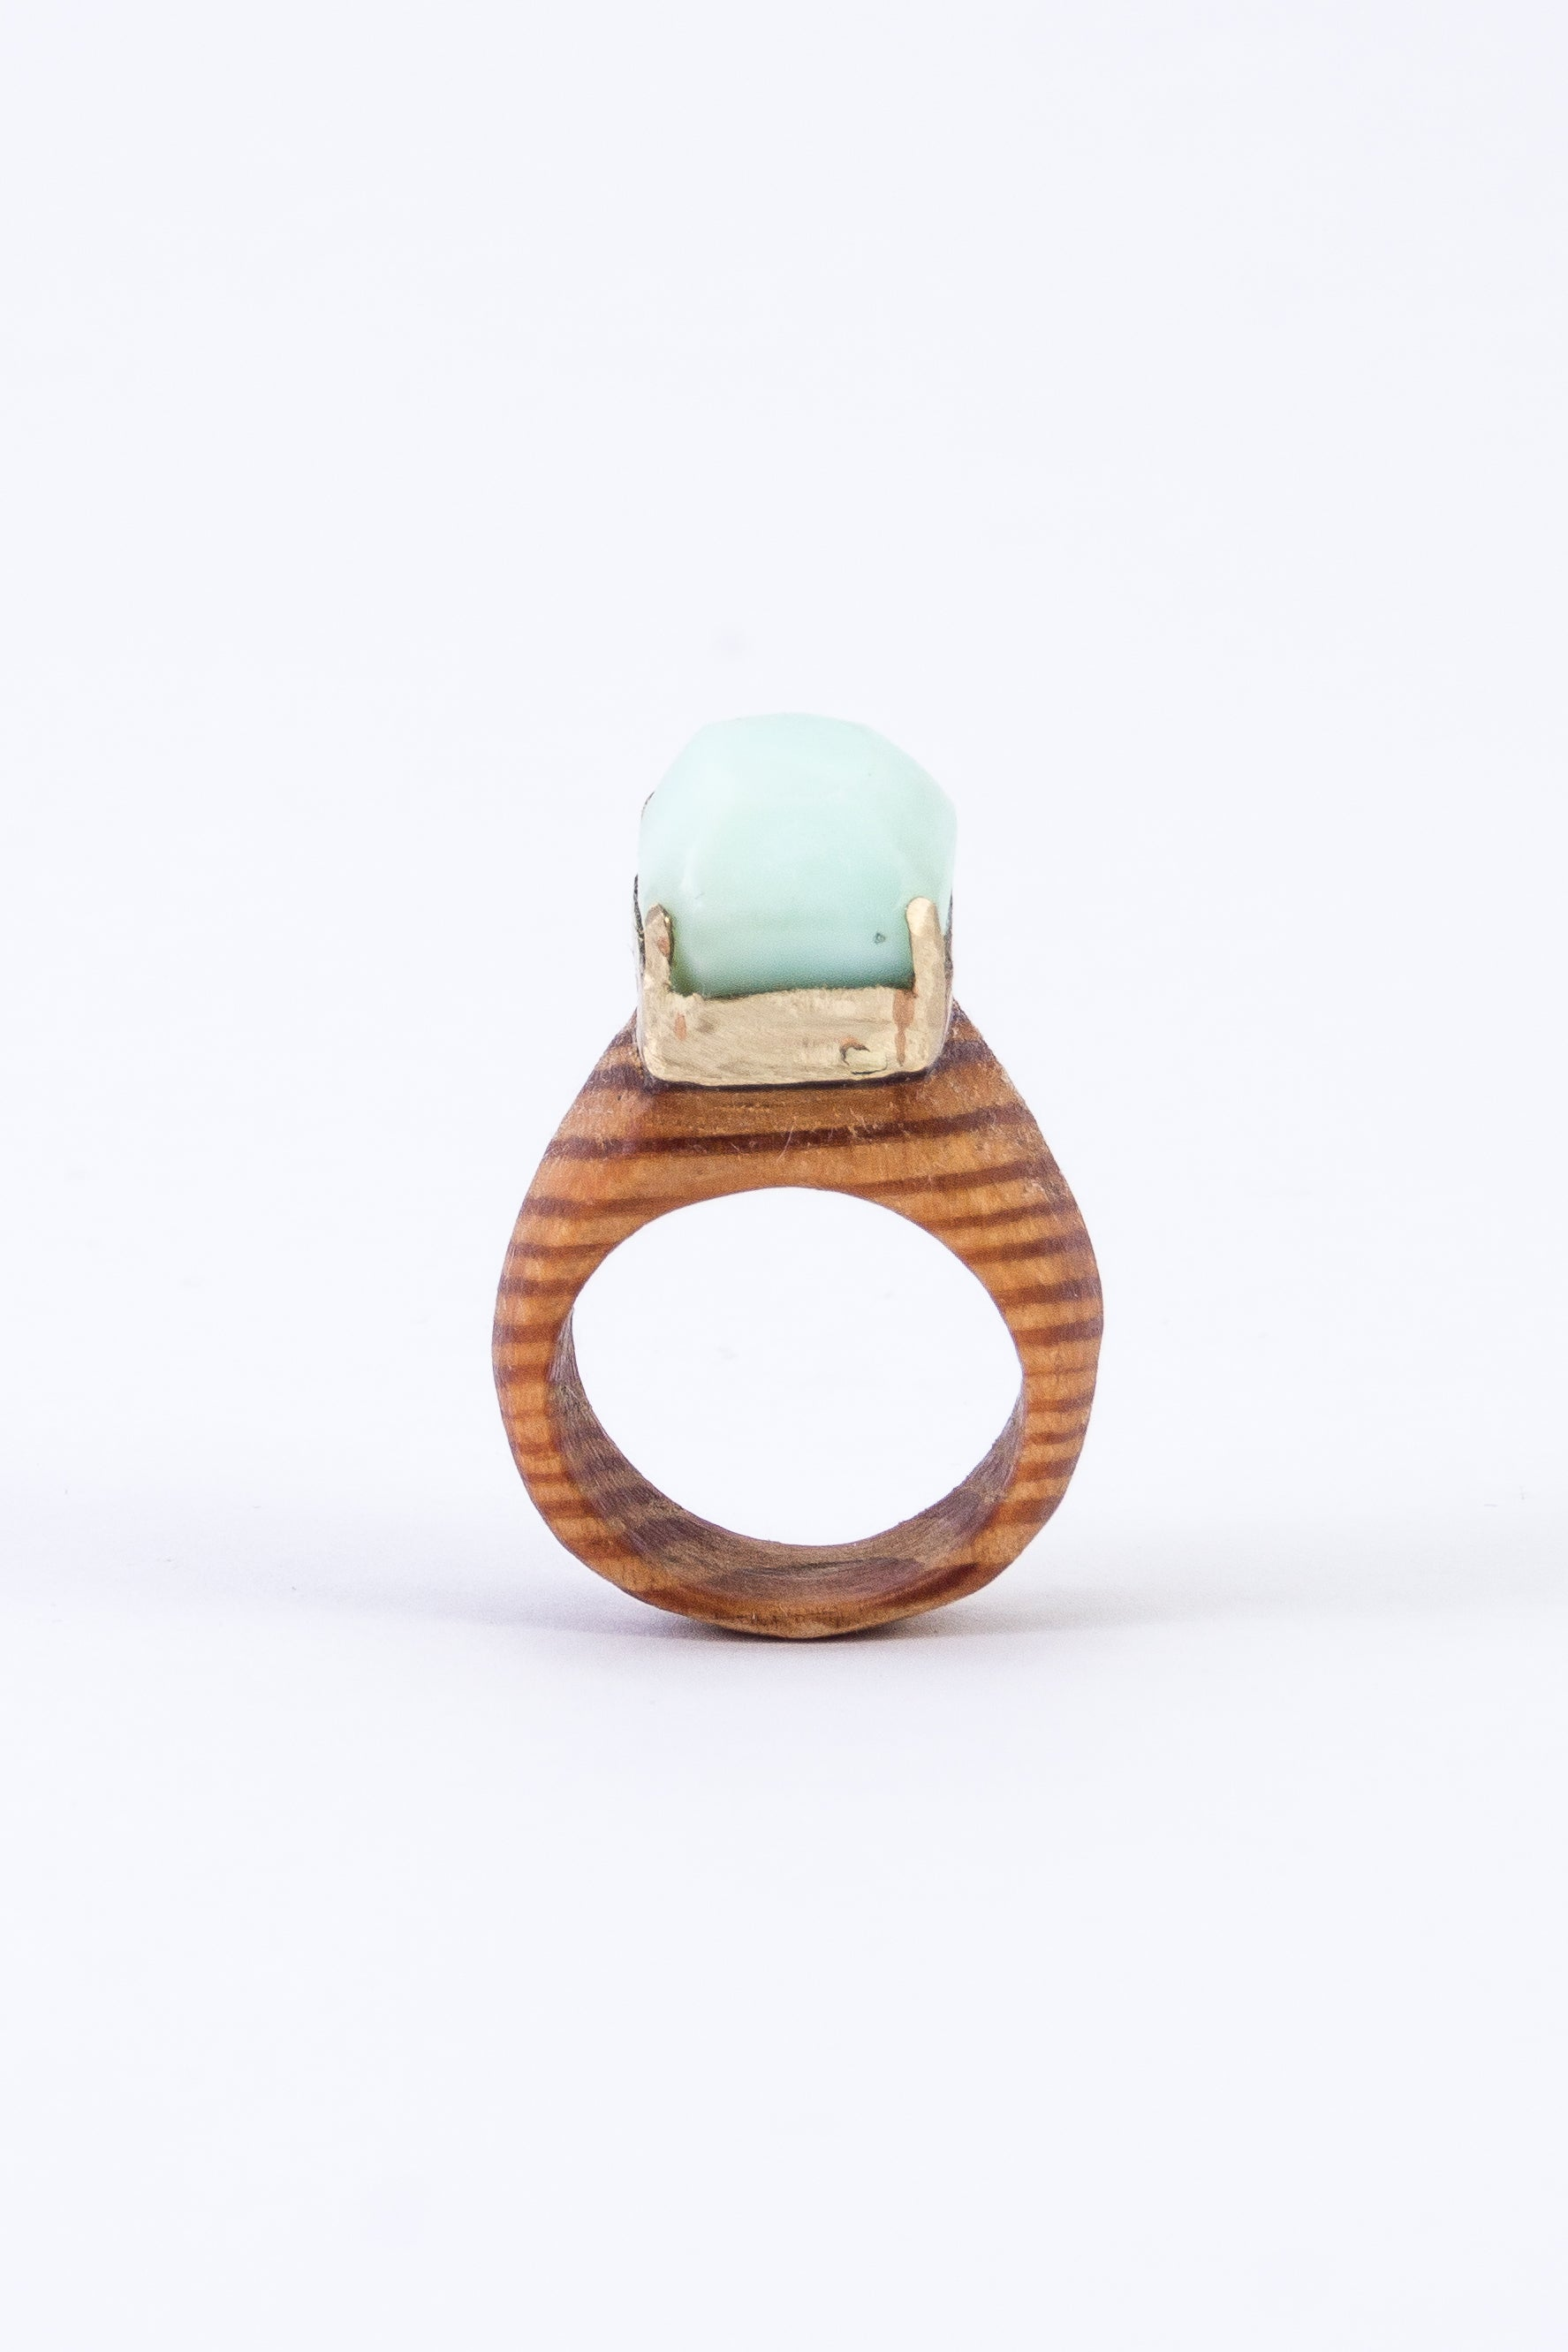 CRYSTAL & WOOD with GOLD ring - LARGE DIAMOND setting